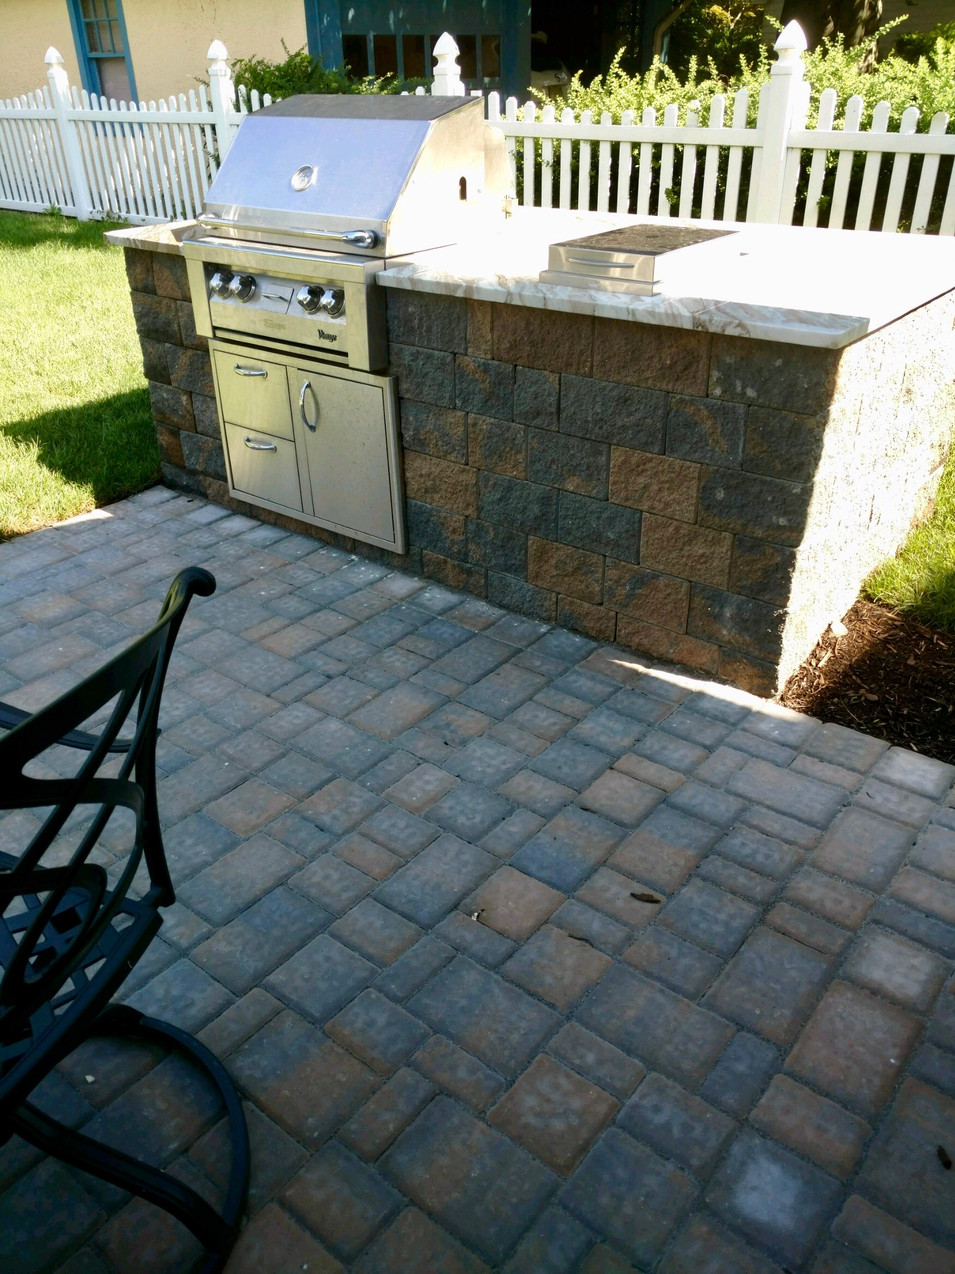 Built-In Outdoor Kitchen Using Cambridge Wall System